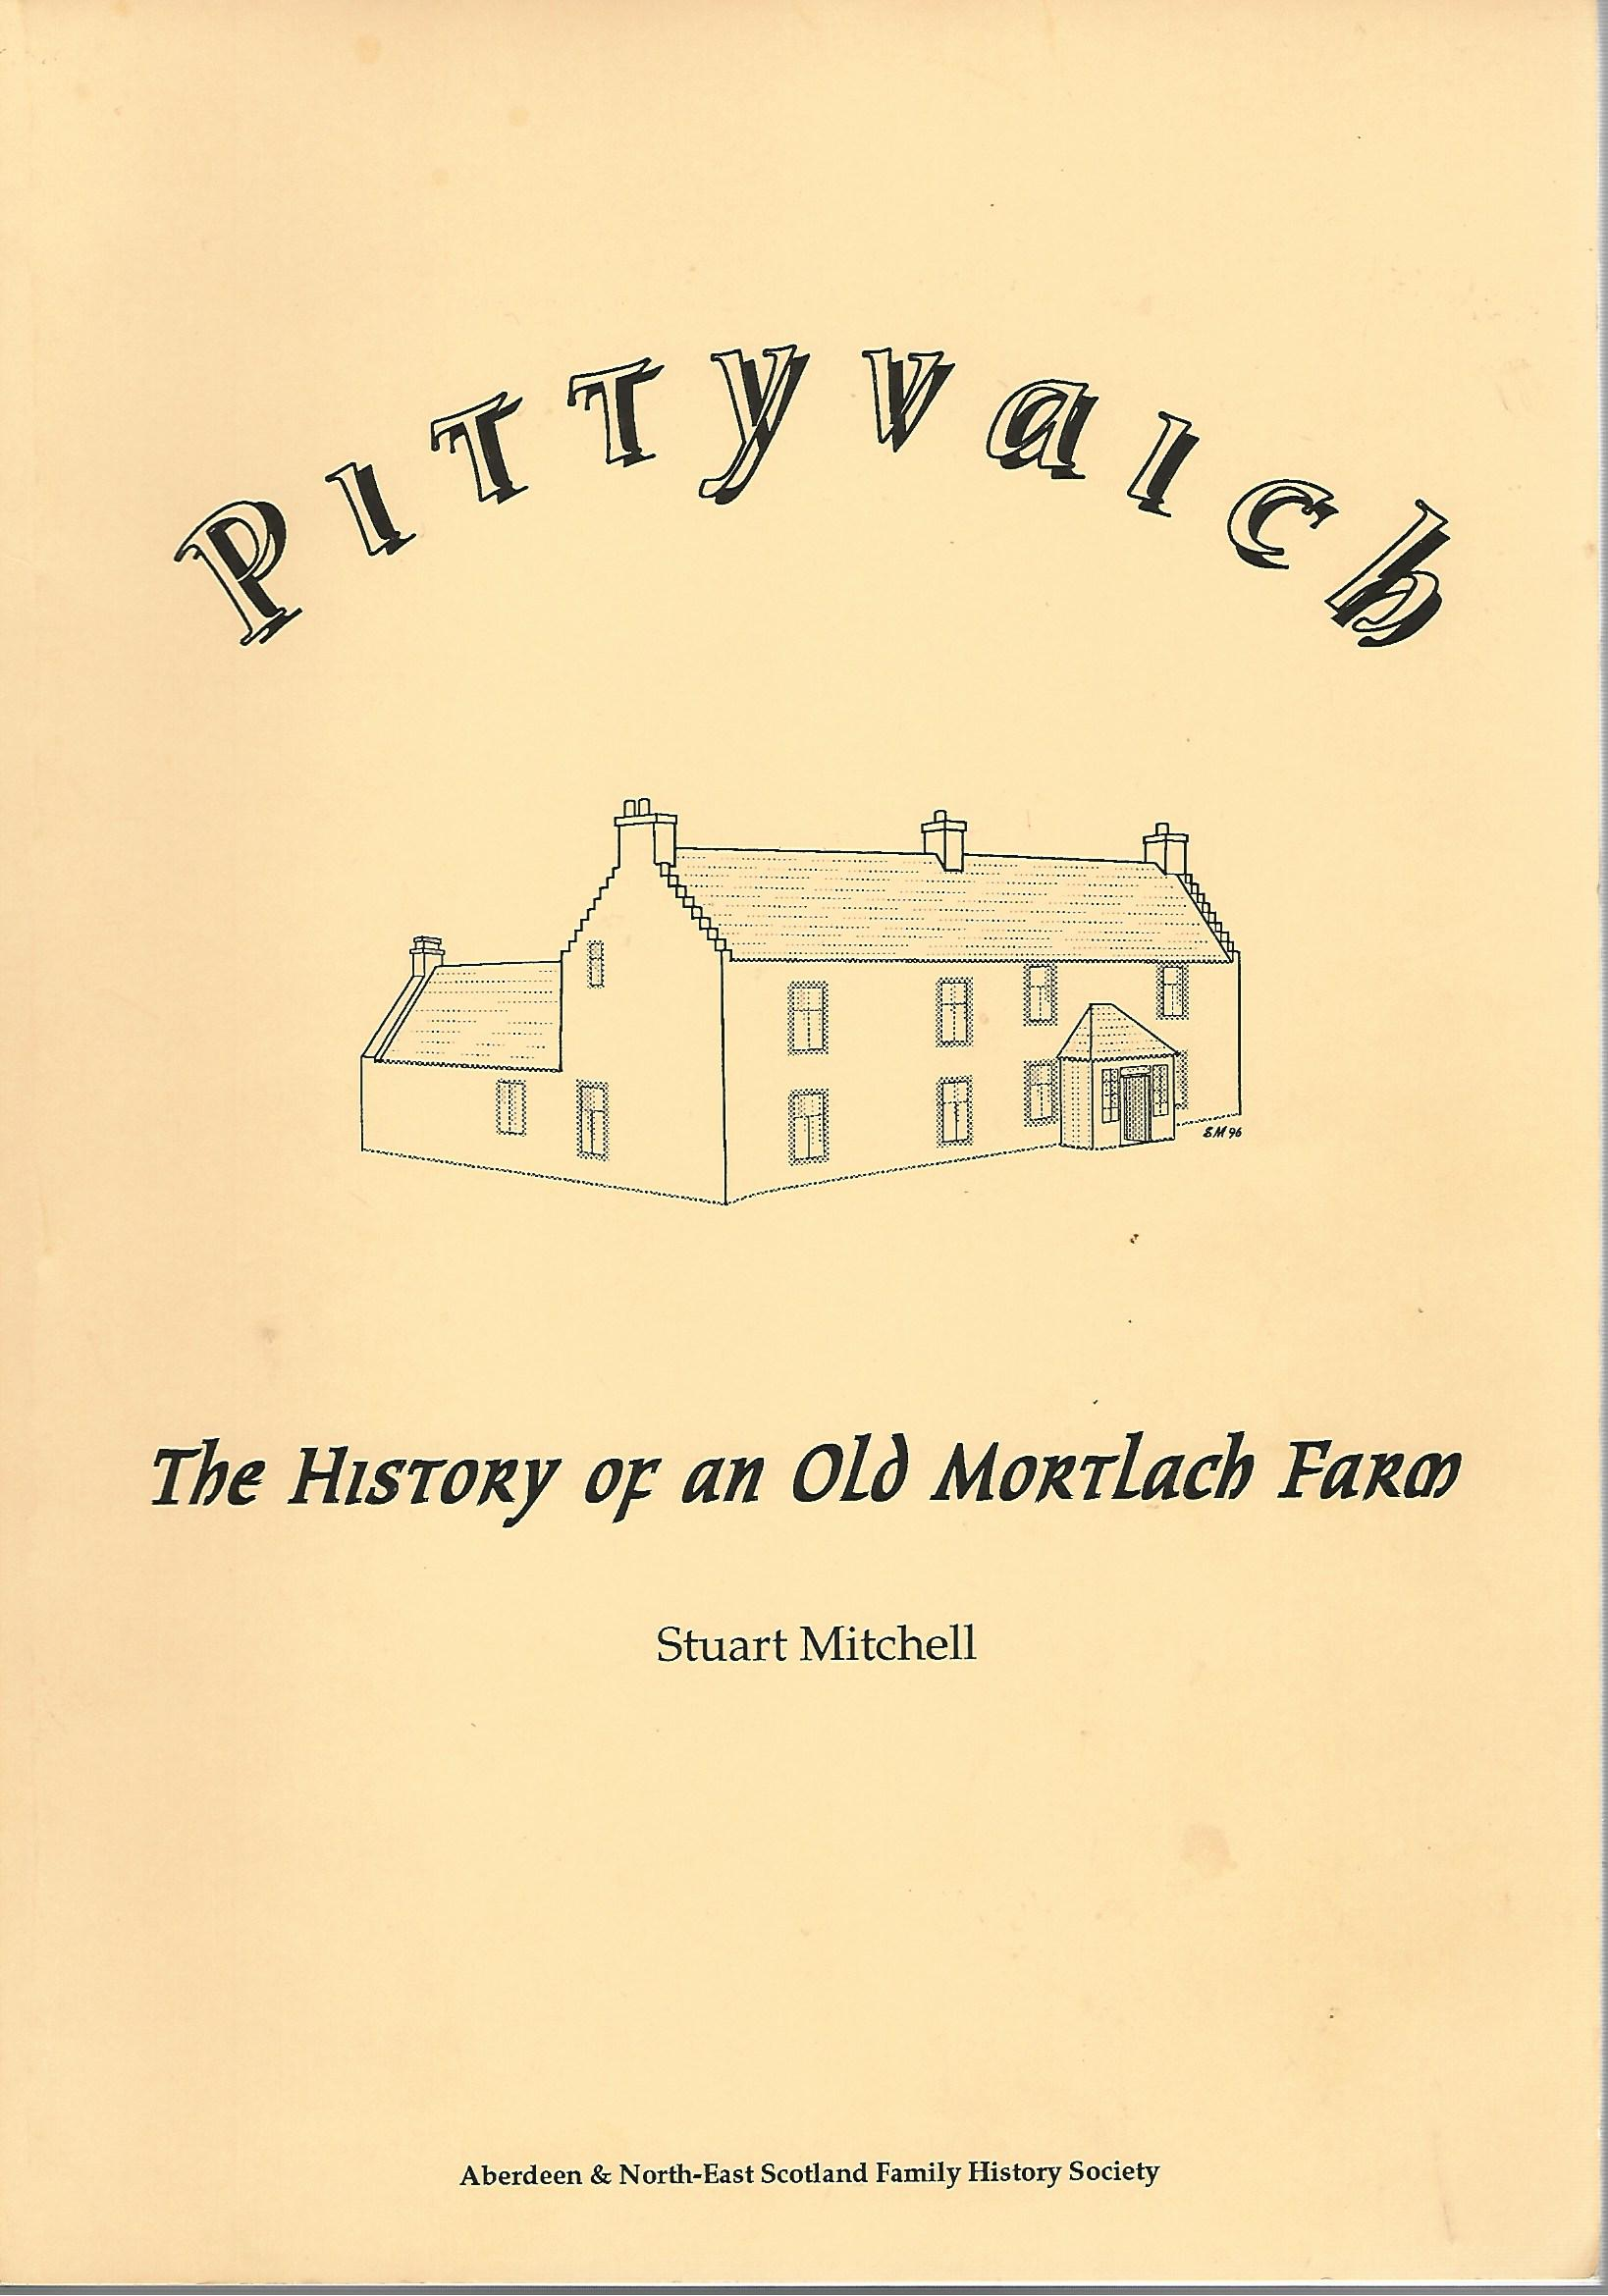 Image for Pittyvaich: The History of an Old Mortlach Farm